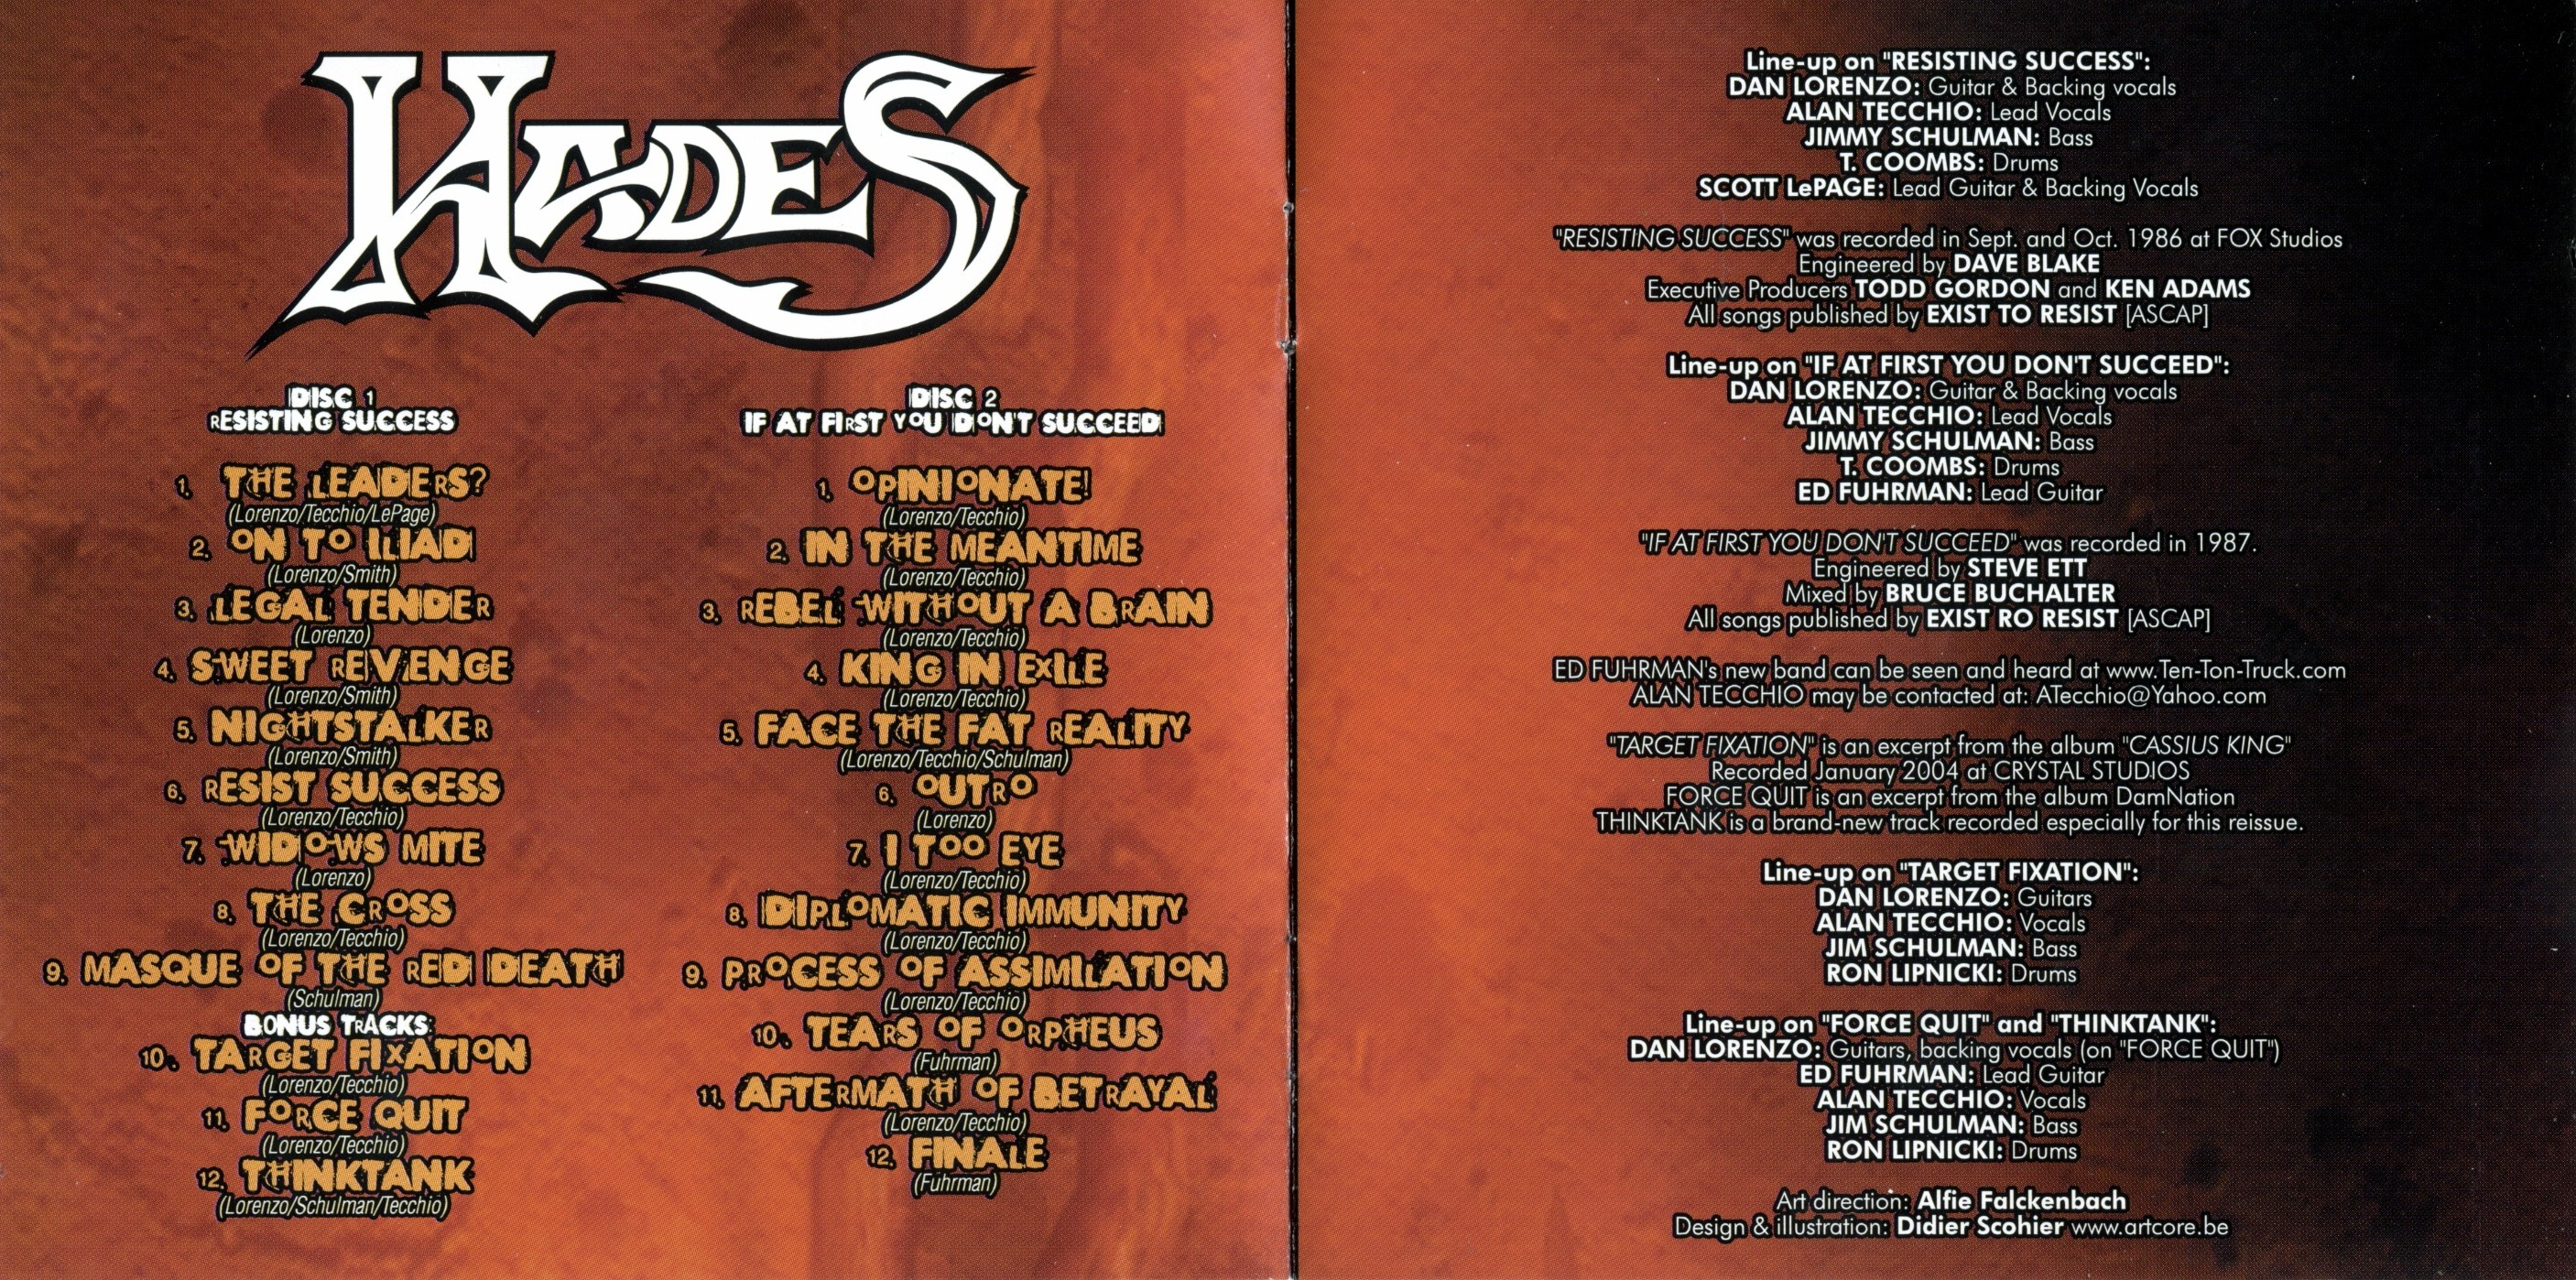 Hades - Nothing Succeeds Like Succees - Booklet (2-4)